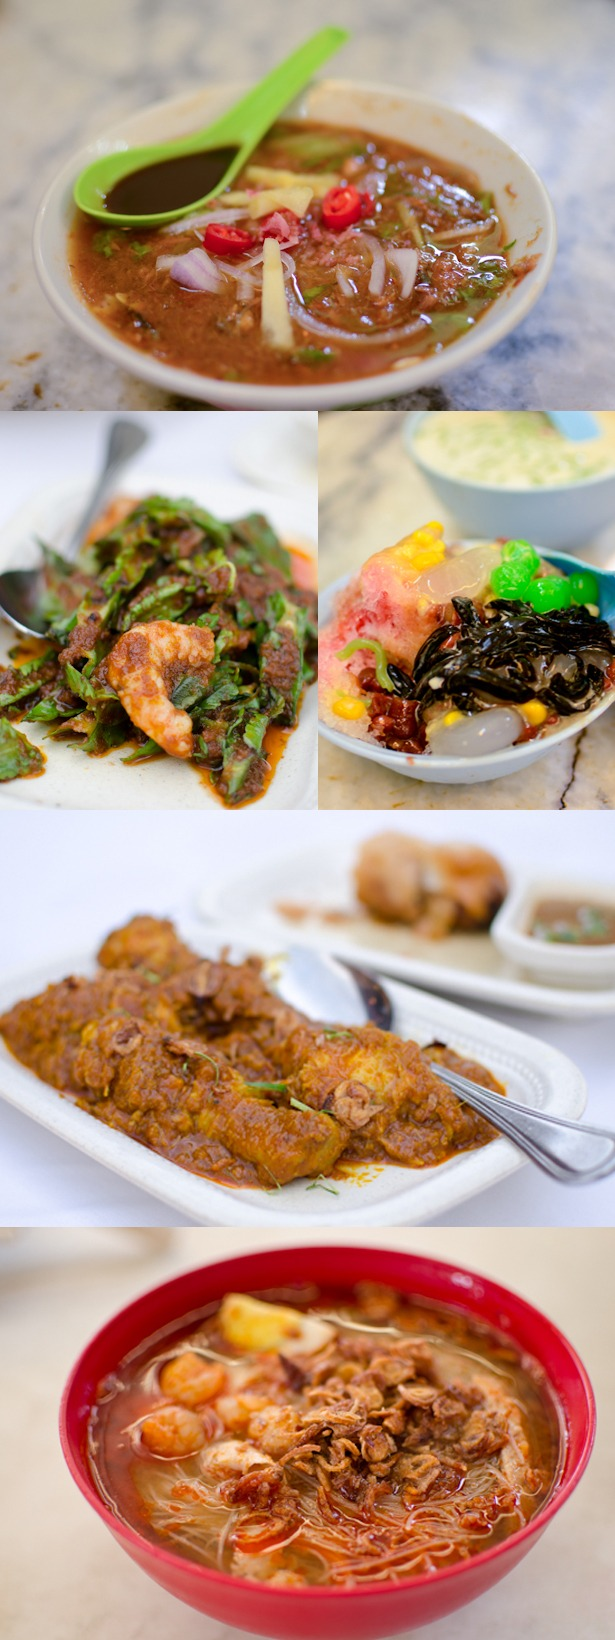 Food of Penang